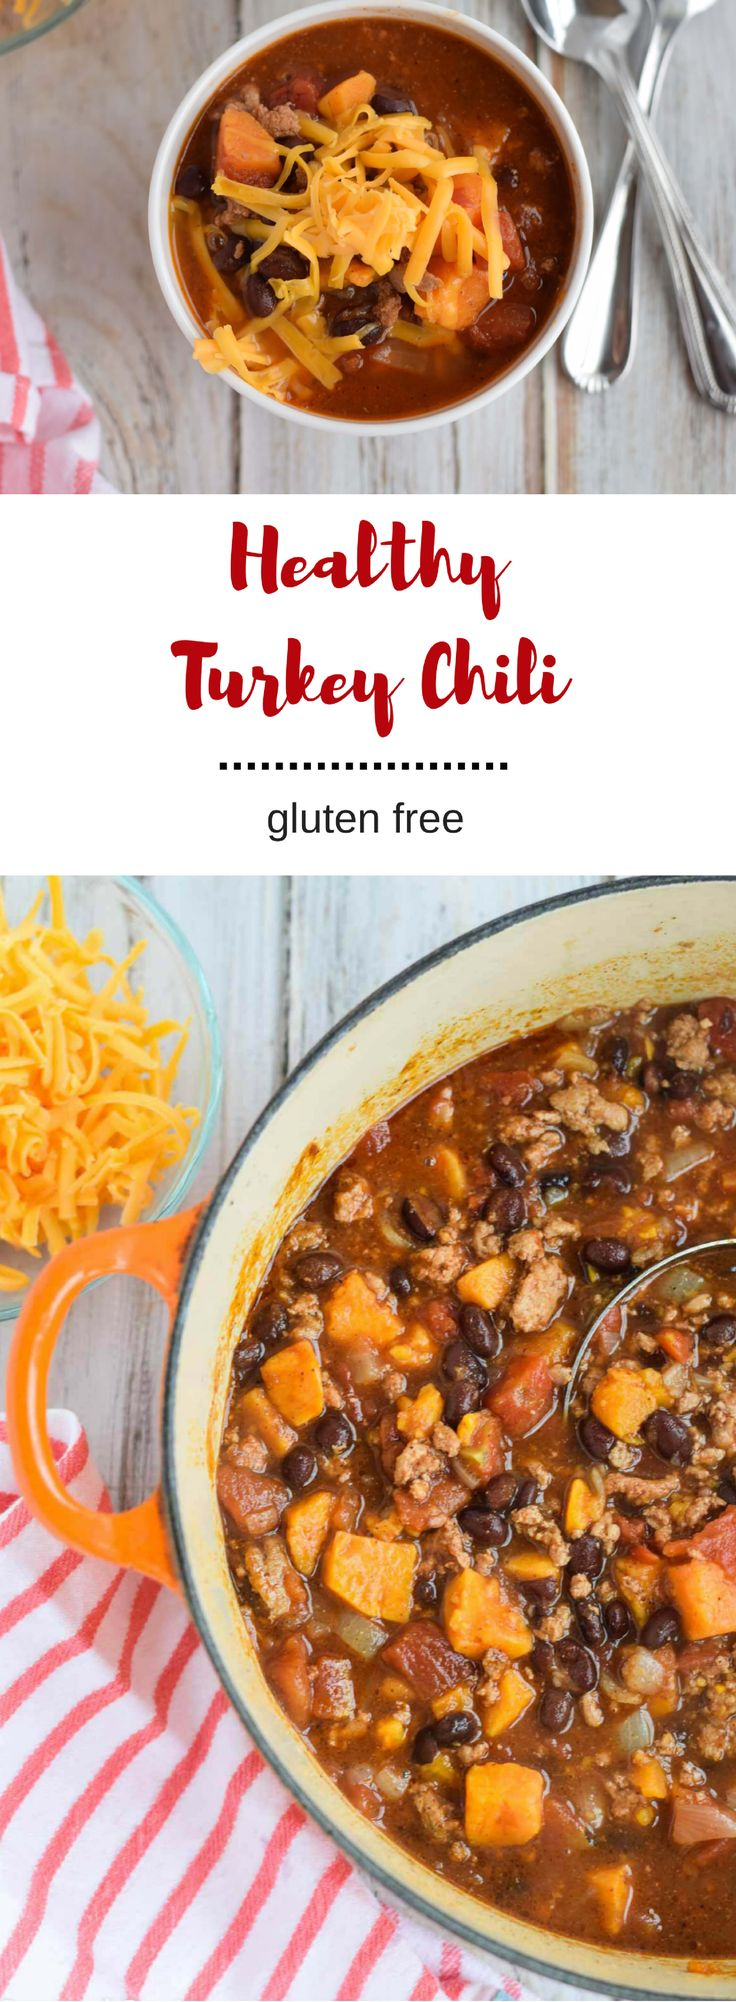 This gluten-free Healthy Turkey Chili is easy enough to prepare on a busy weeknight.  It is flavorful and healthy, full of black beans, sweet potatoes, and ground turkey.